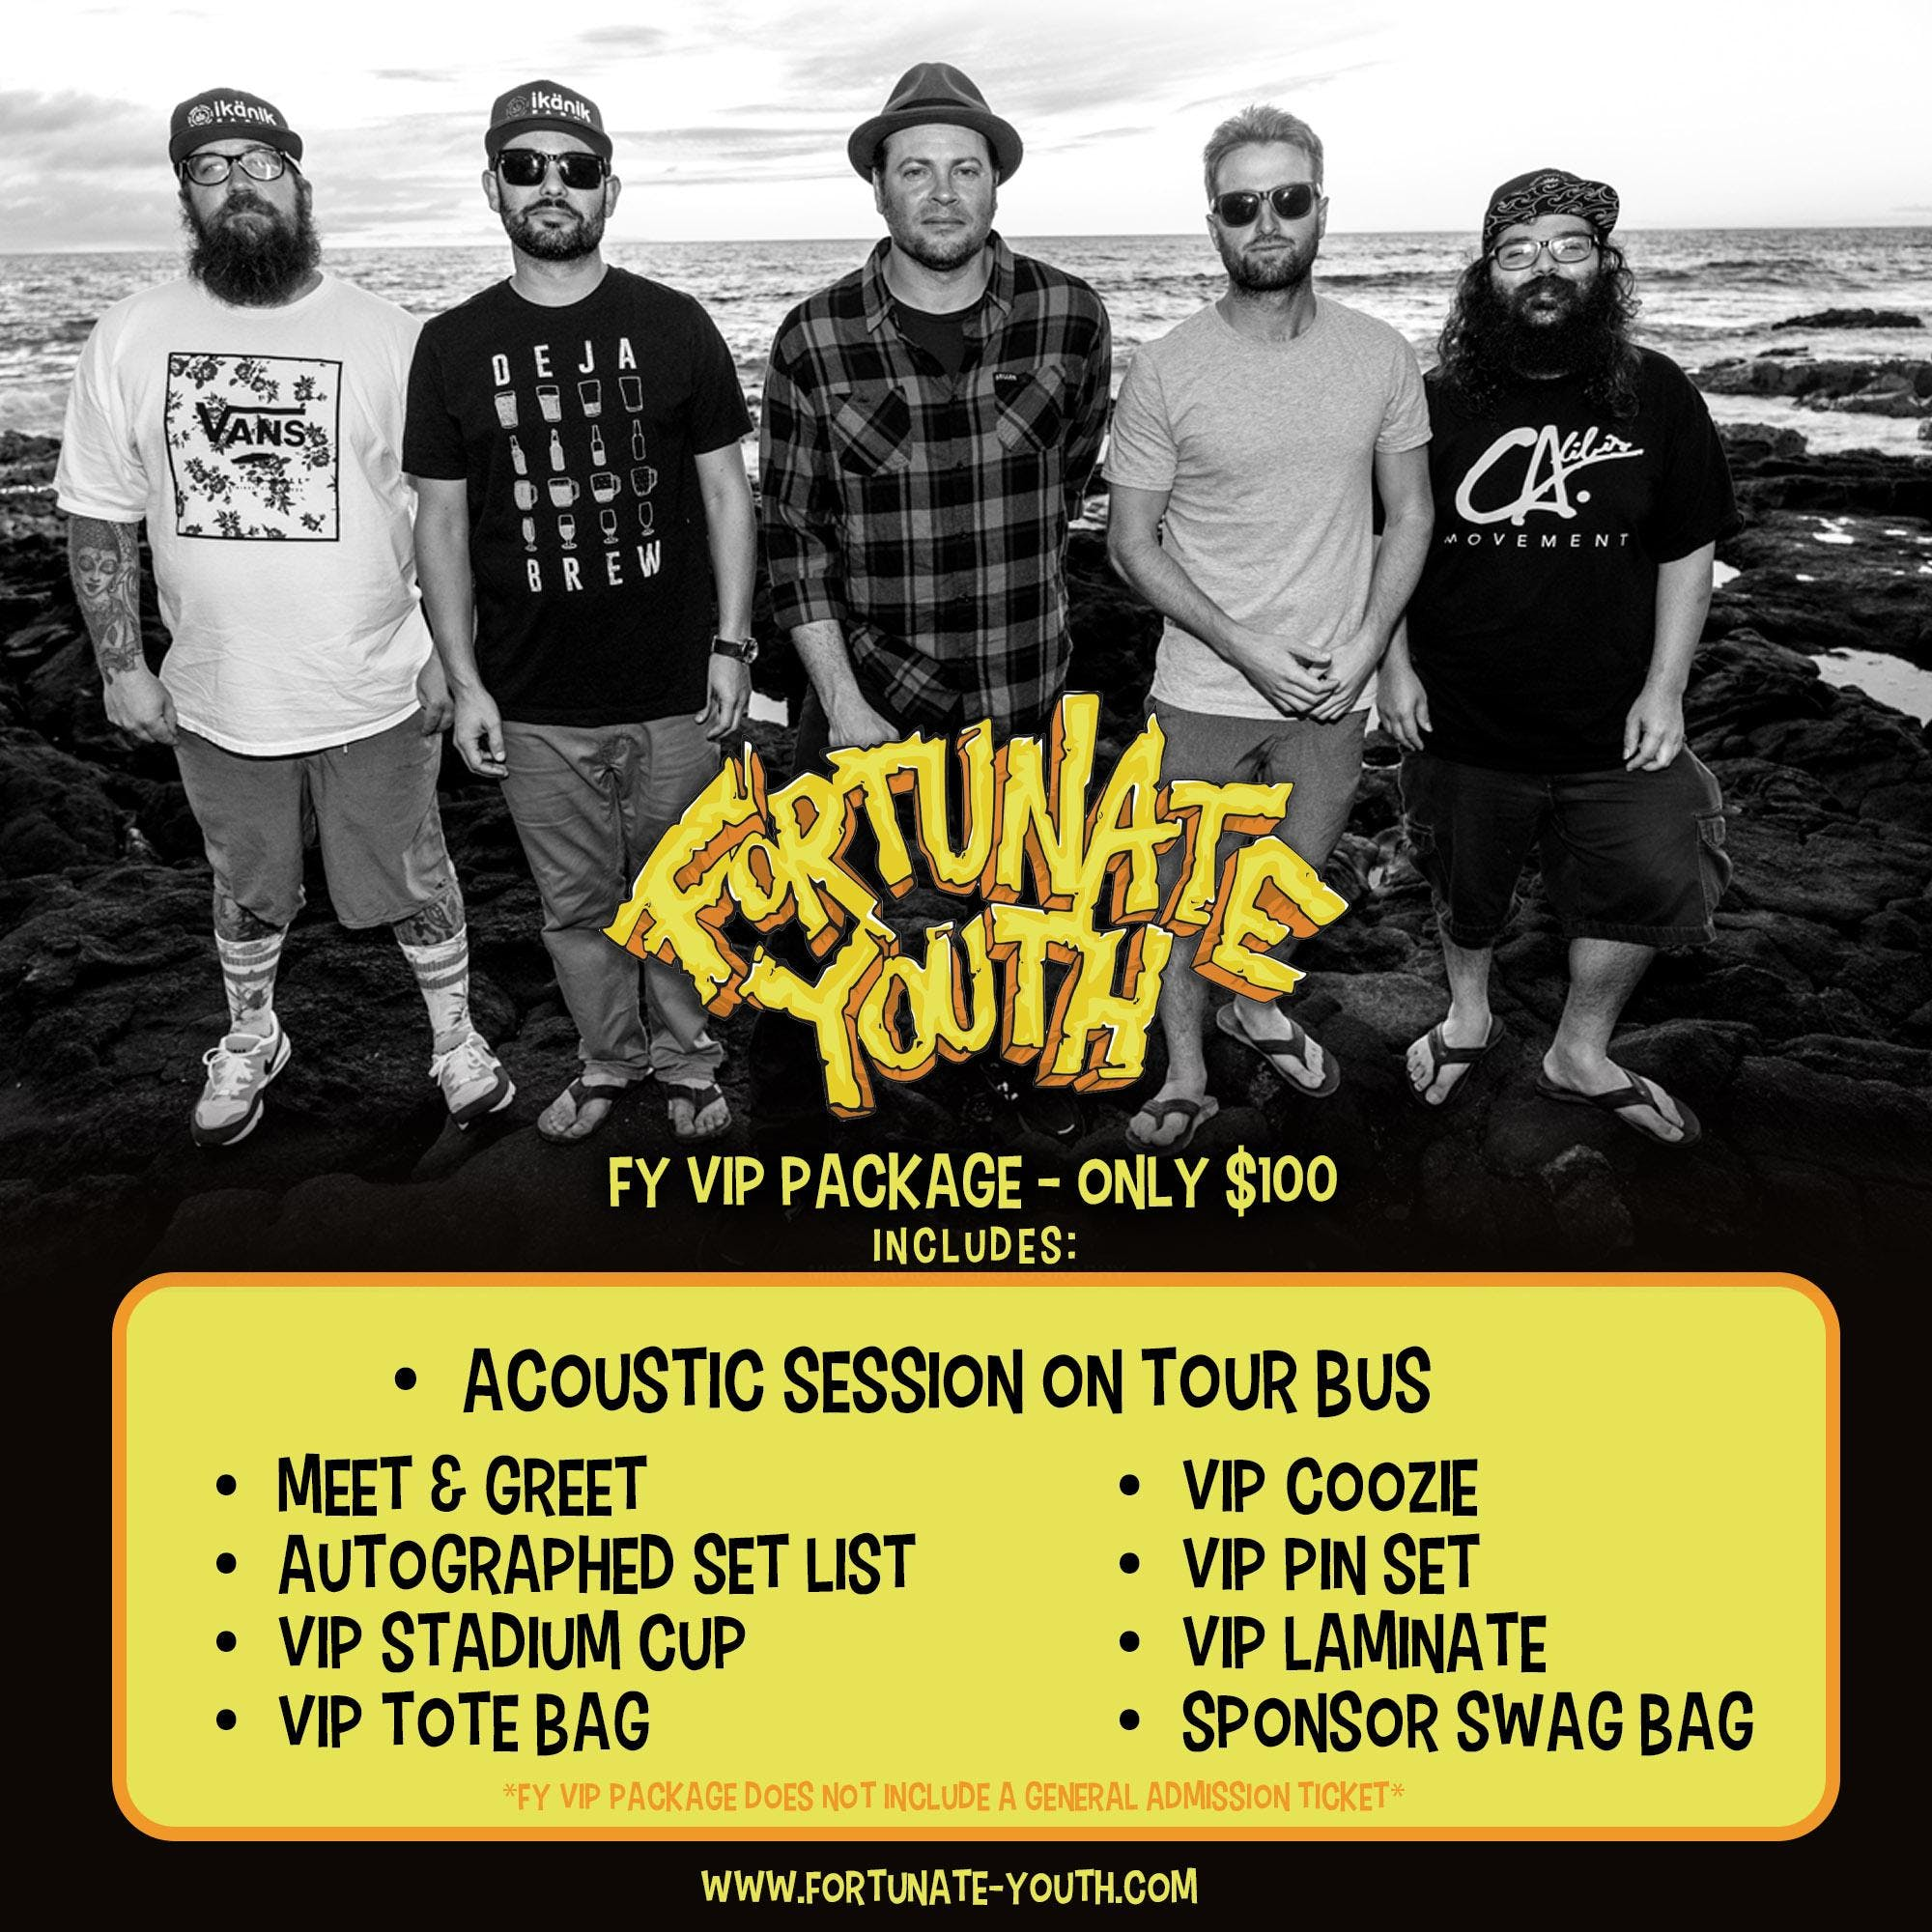 FY VIP PACKAGE 2019 - NEW YORK, NY